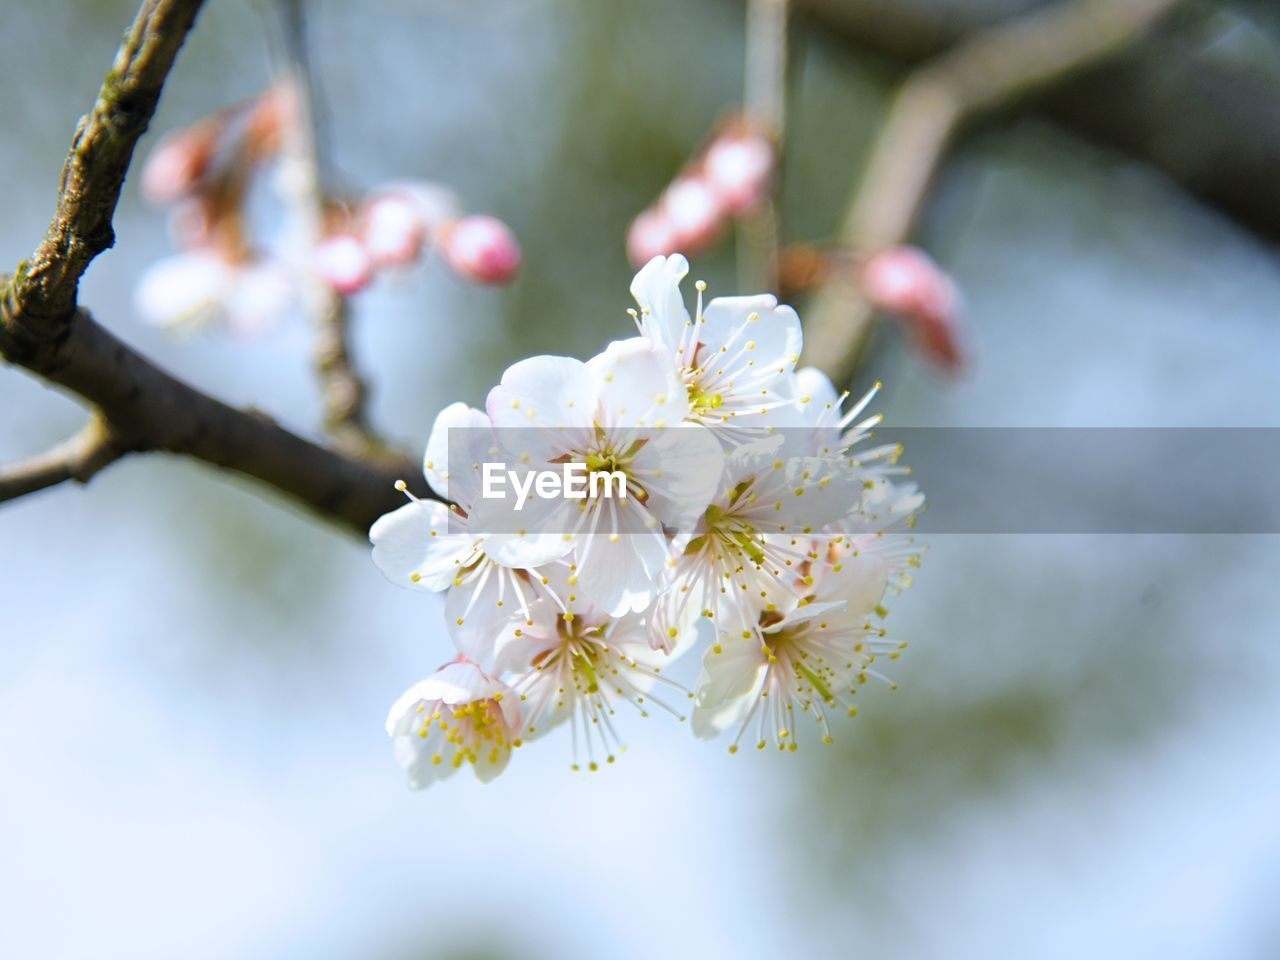 plant, flowering plant, flower, freshness, fragility, beauty in nature, growth, vulnerability, branch, tree, close-up, petal, blossom, springtime, nature, focus on foreground, day, white color, cherry blossom, flower head, pollen, no people, outdoors, plum blossom, cherry tree